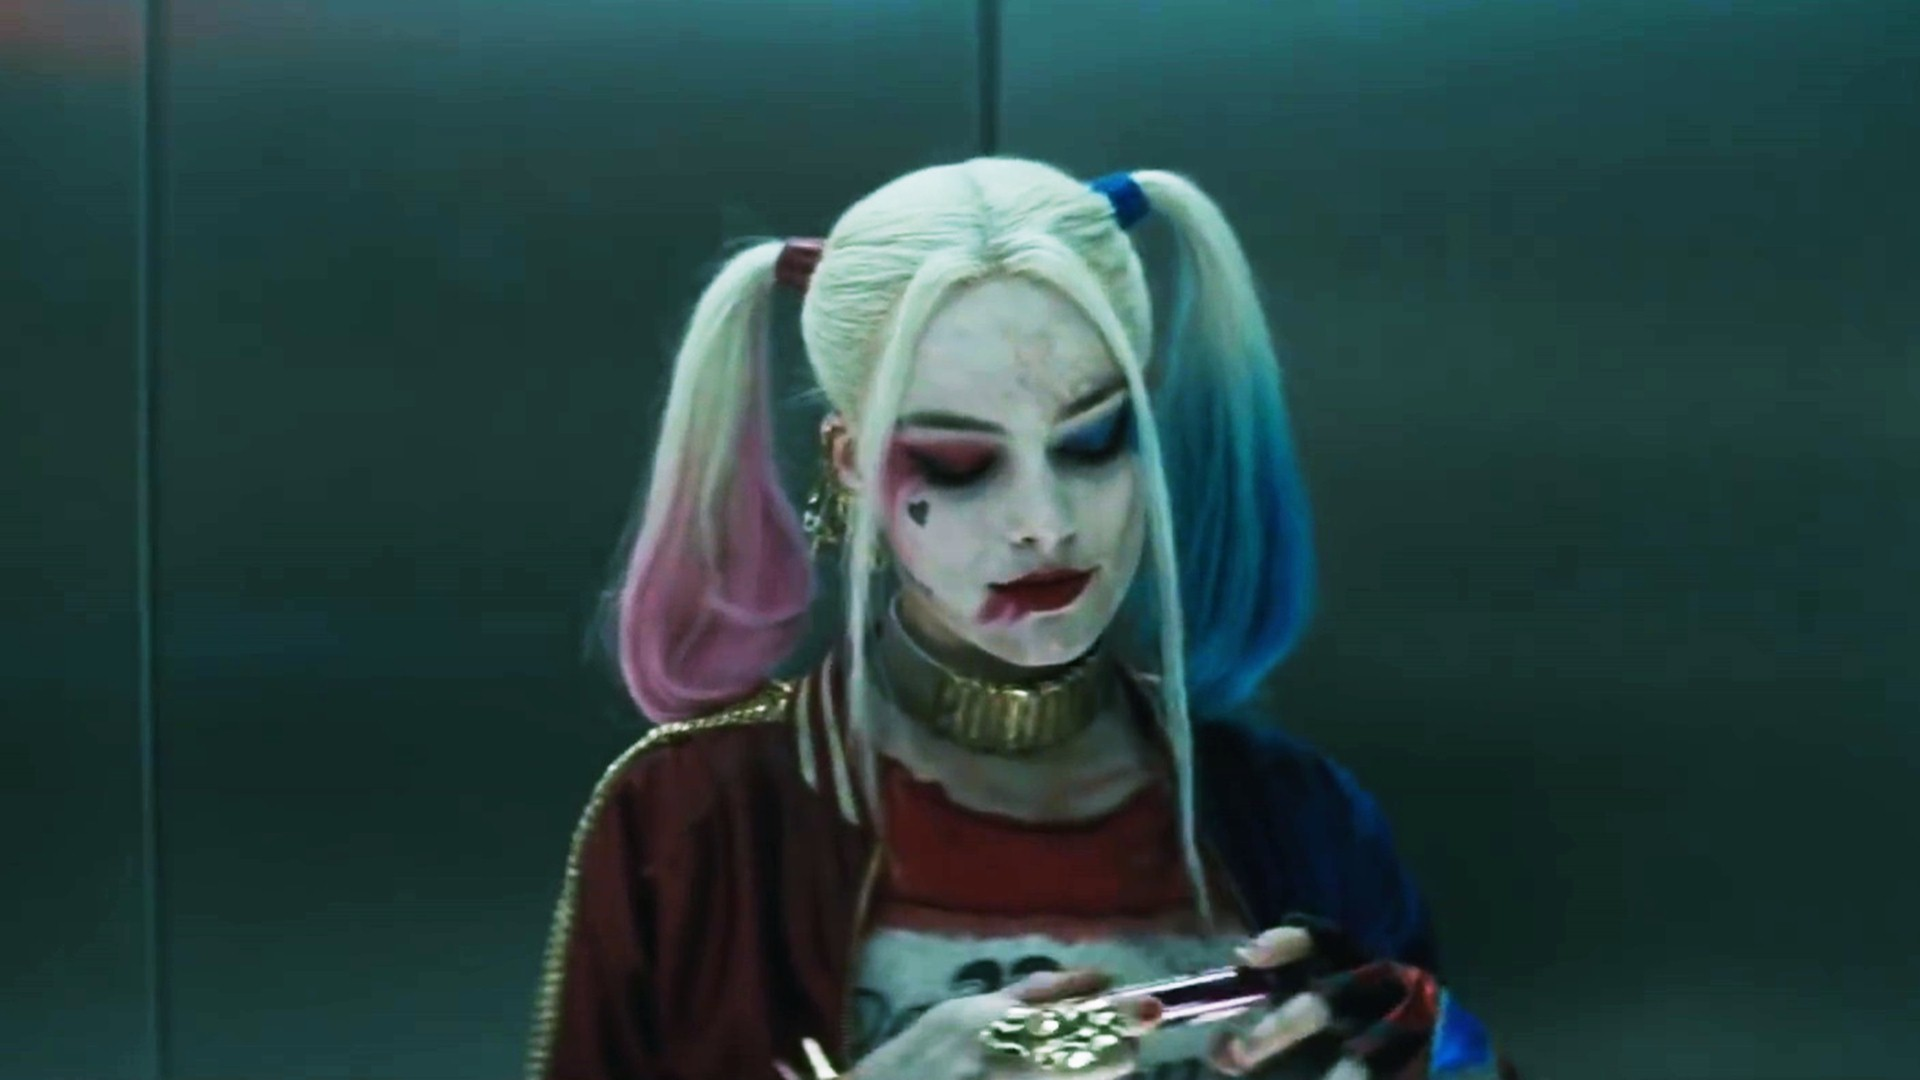 Free Download Girl Wallpaper For 360x640 Suicide Squad Harleen Quinzel Harley Quinn Hd Wallpaper